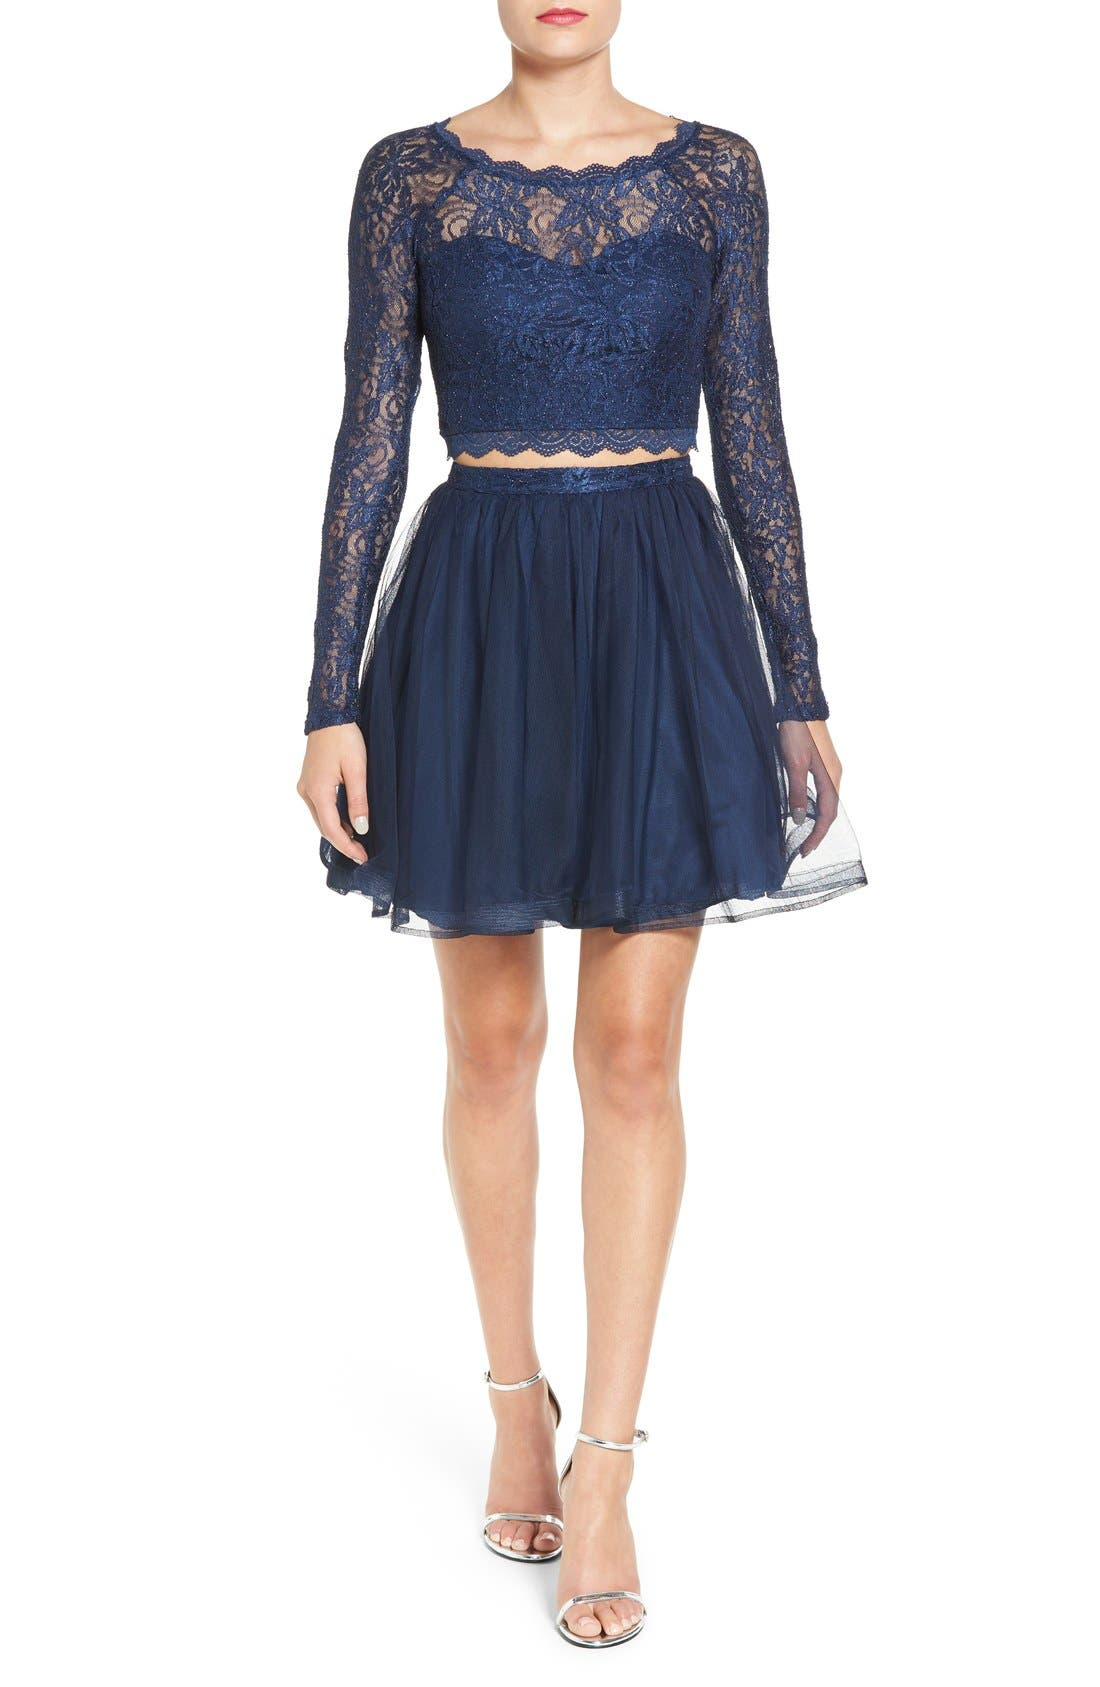 Main Image - Sequin Hearts Long Sleeve Lace Two-Piece Skater Dress